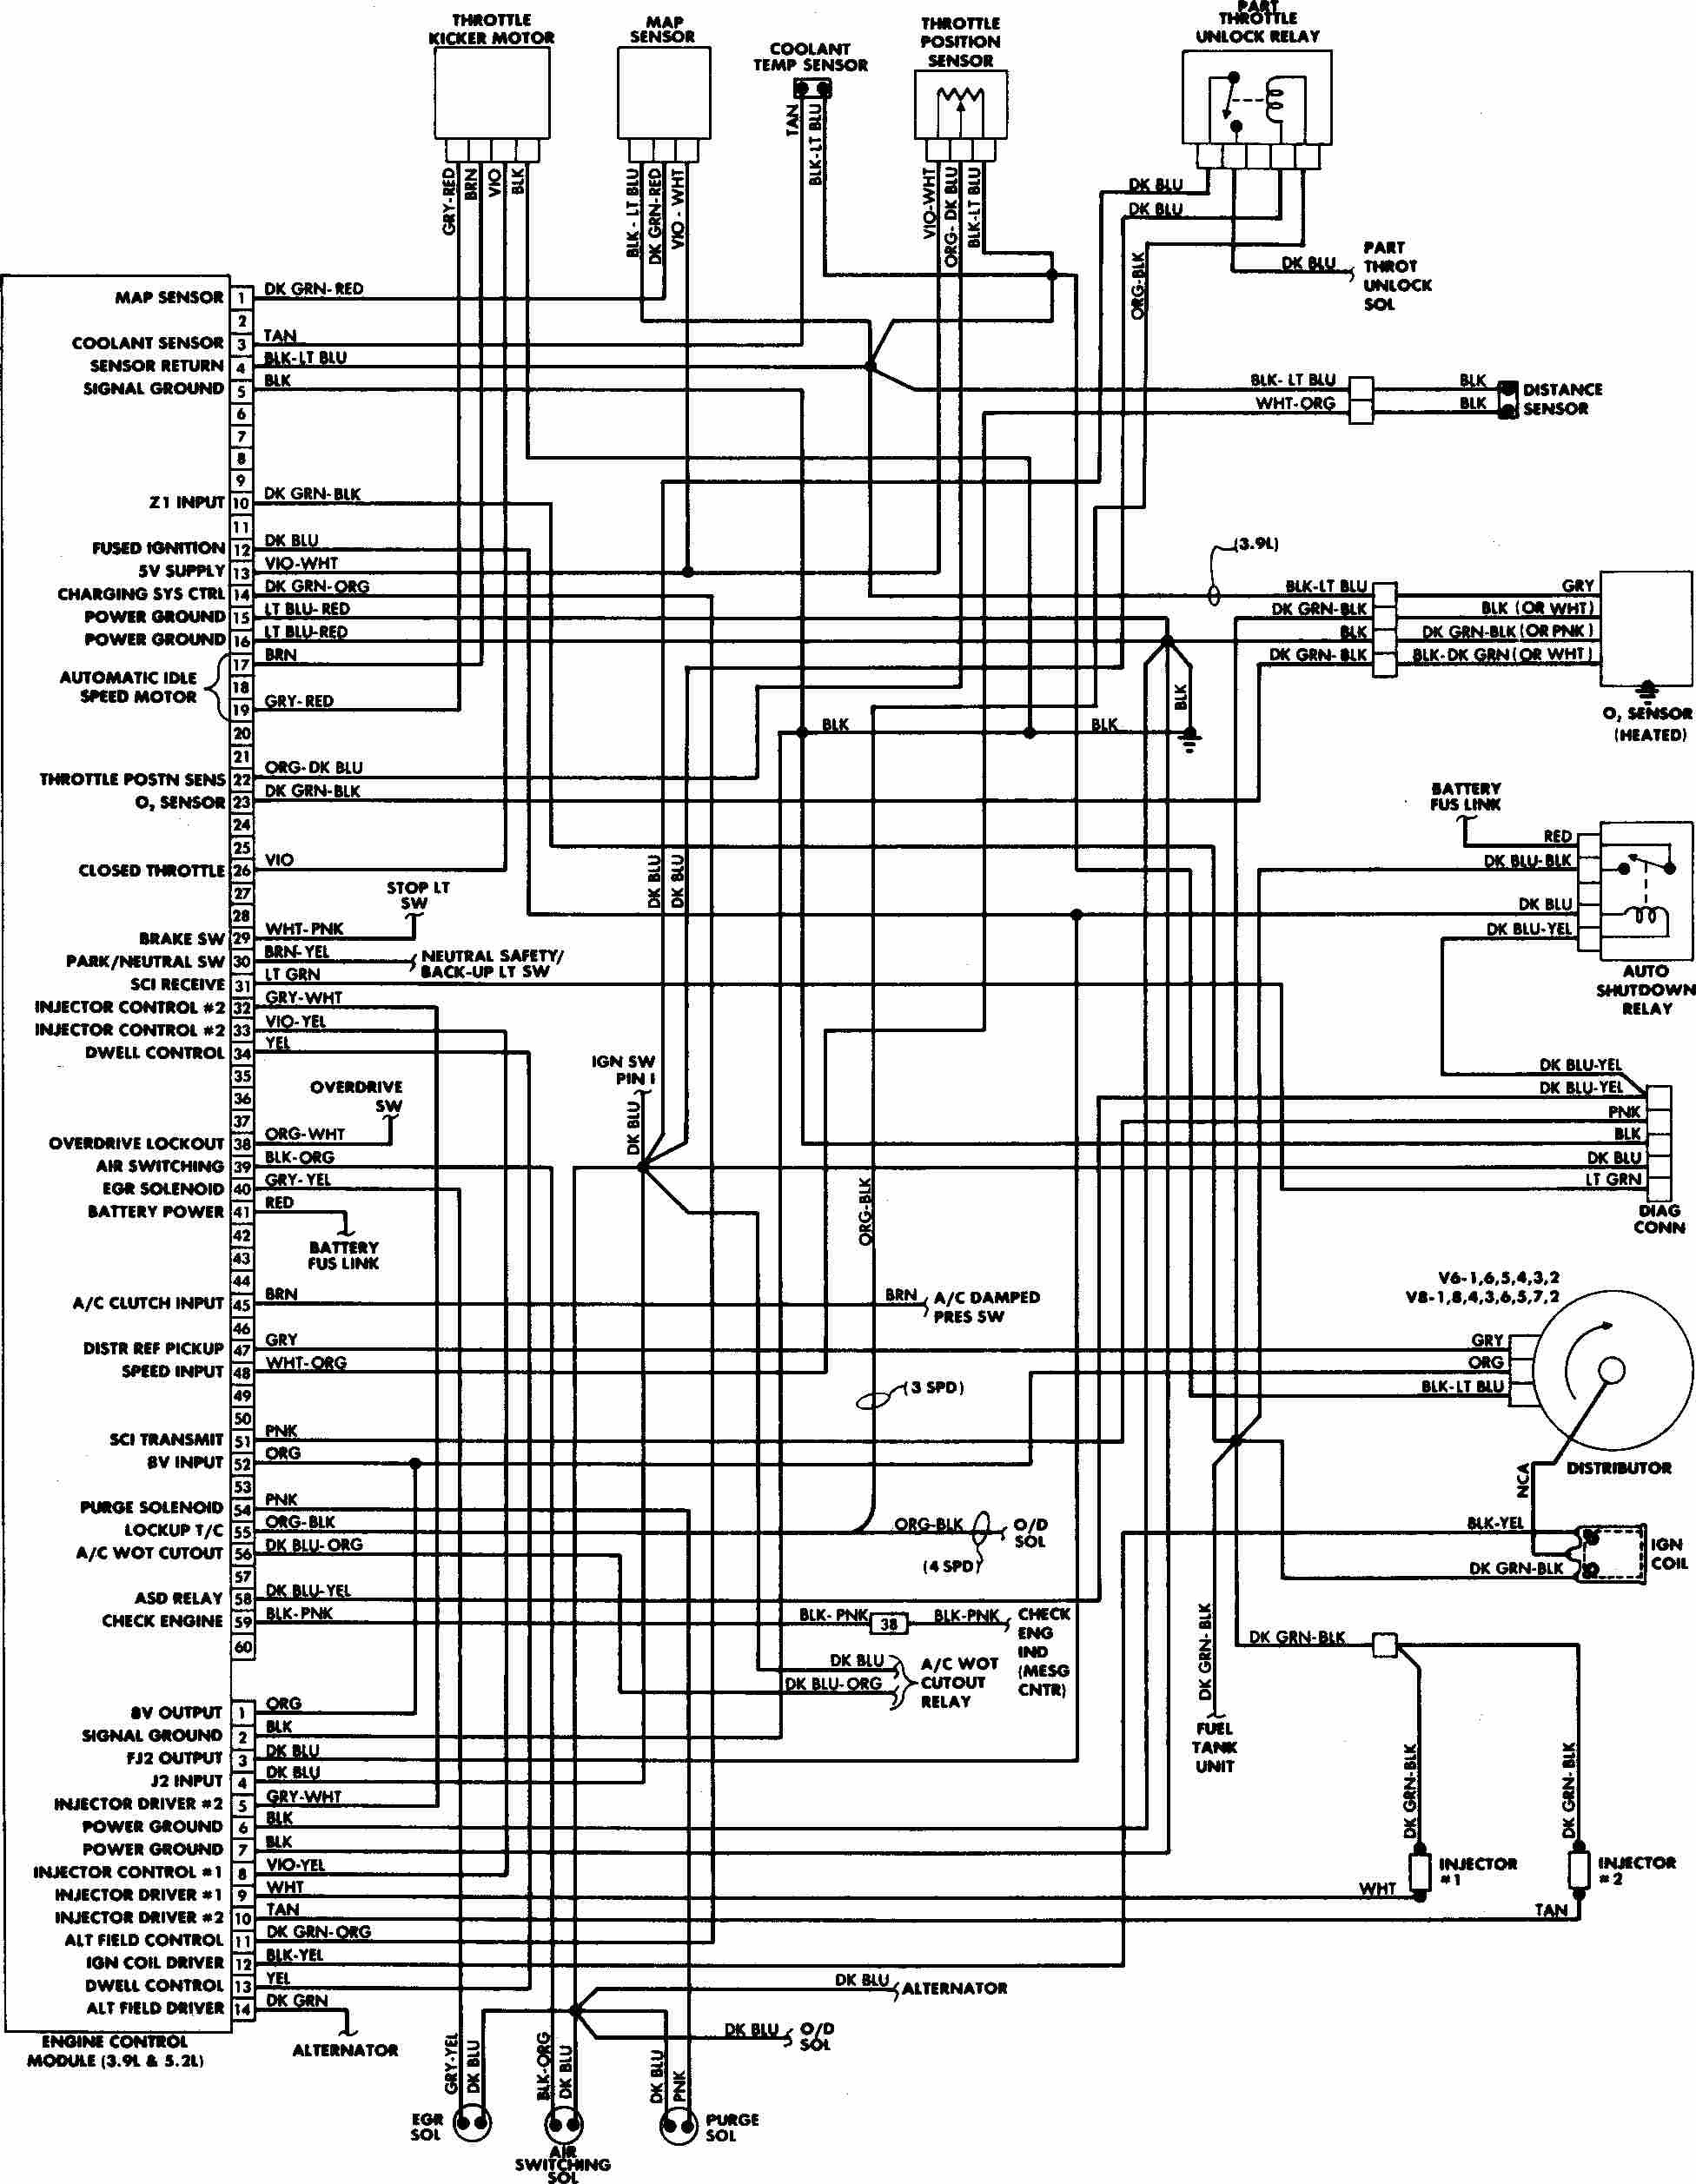 92 dodge van wiring diagram wiring diagrams u2022 rh autonomia co